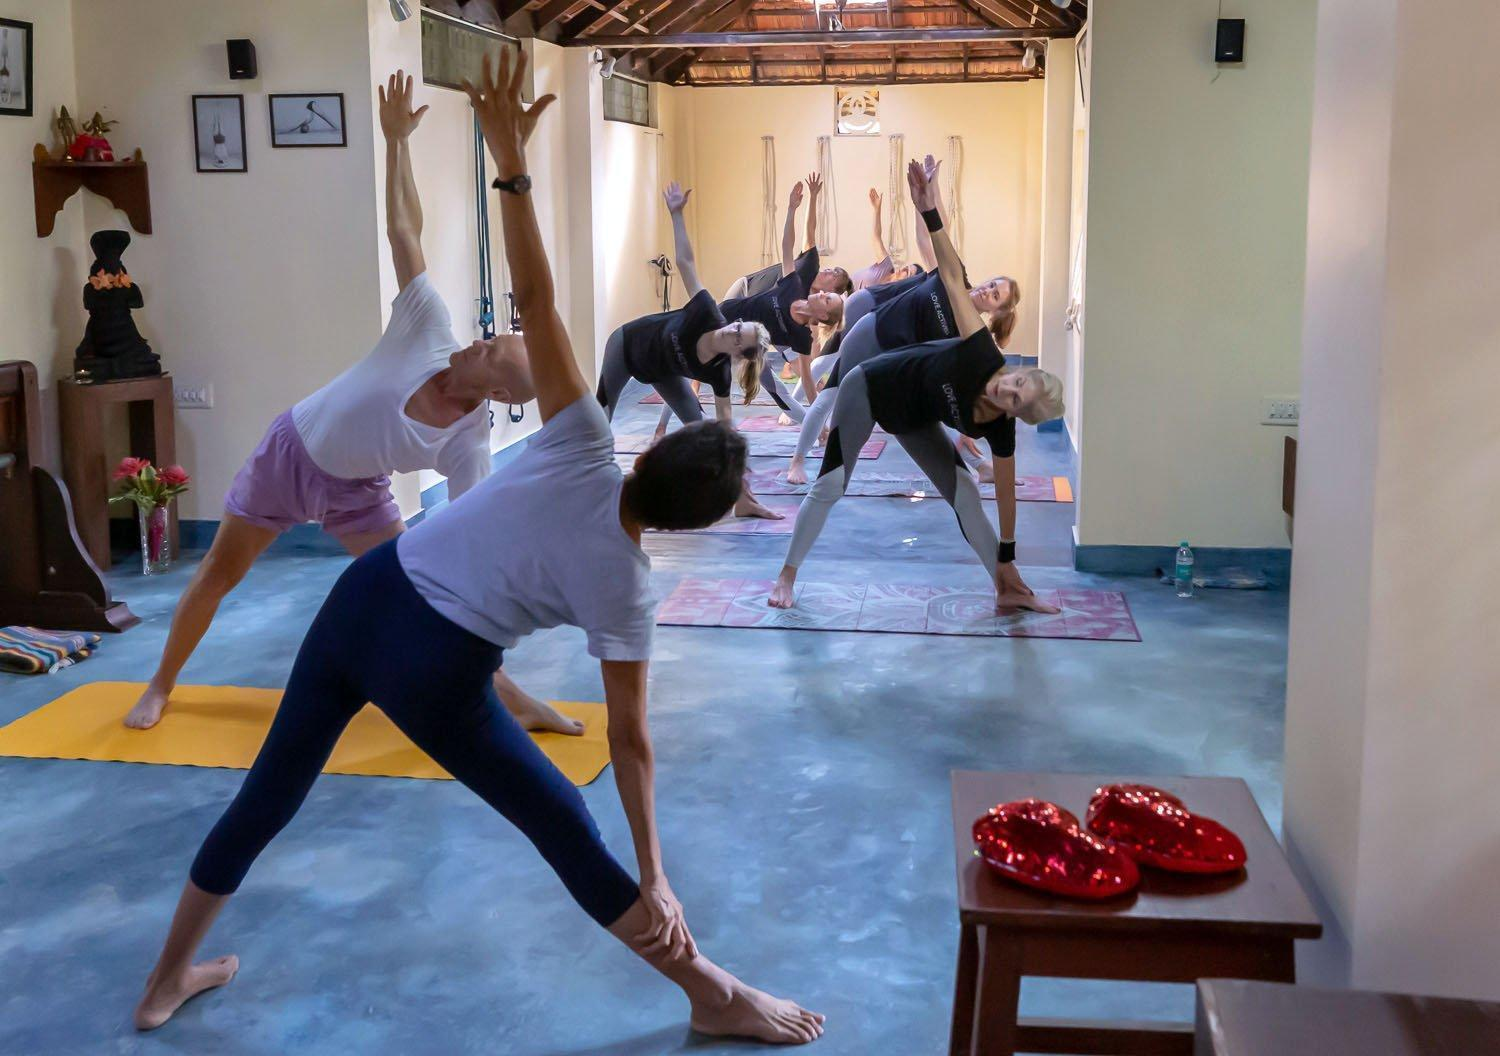 Boca Raton nonprofit uses yoga to make positive connections with other countries | Photos